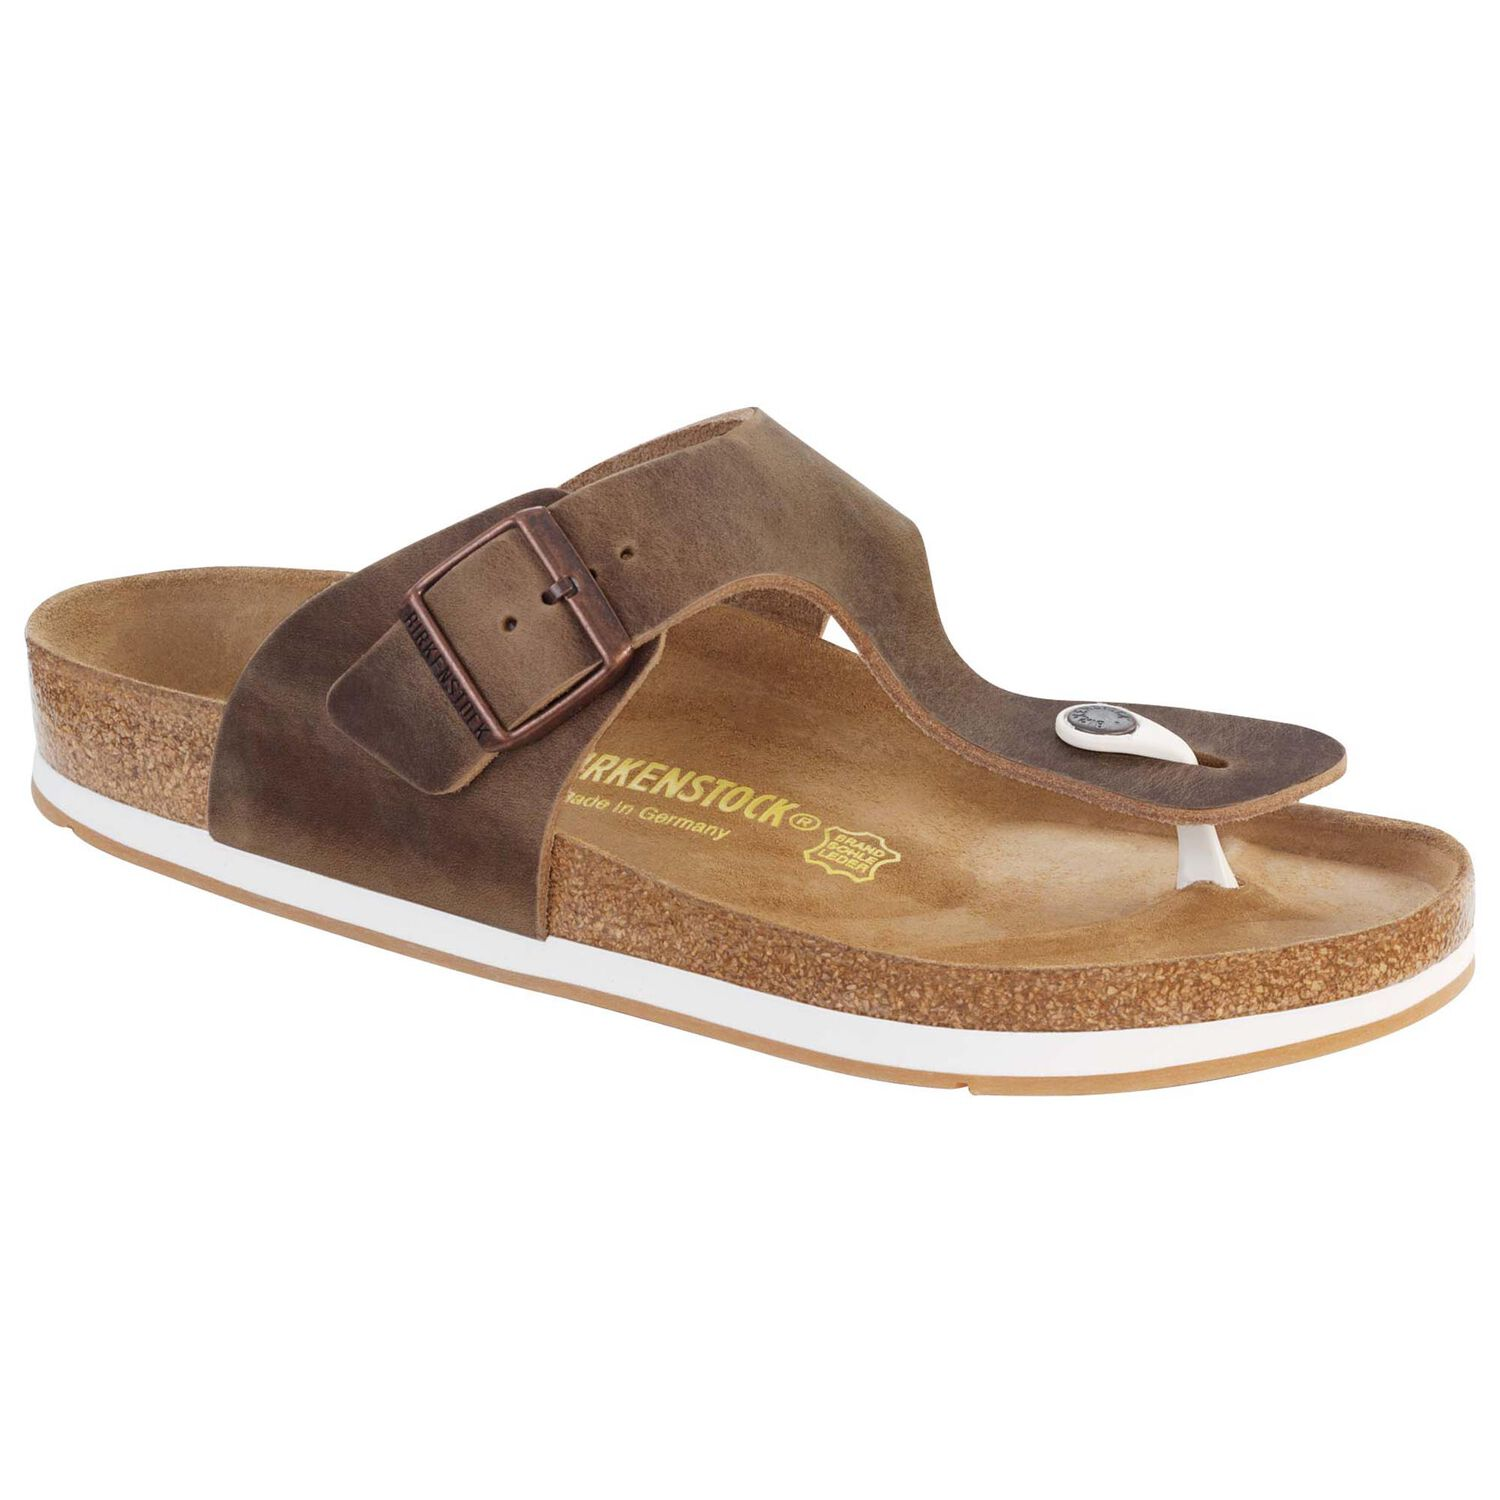 433e9fcba Ramses Oiled Leather Tobacco Brown | shop online at BIRKENSTOCK